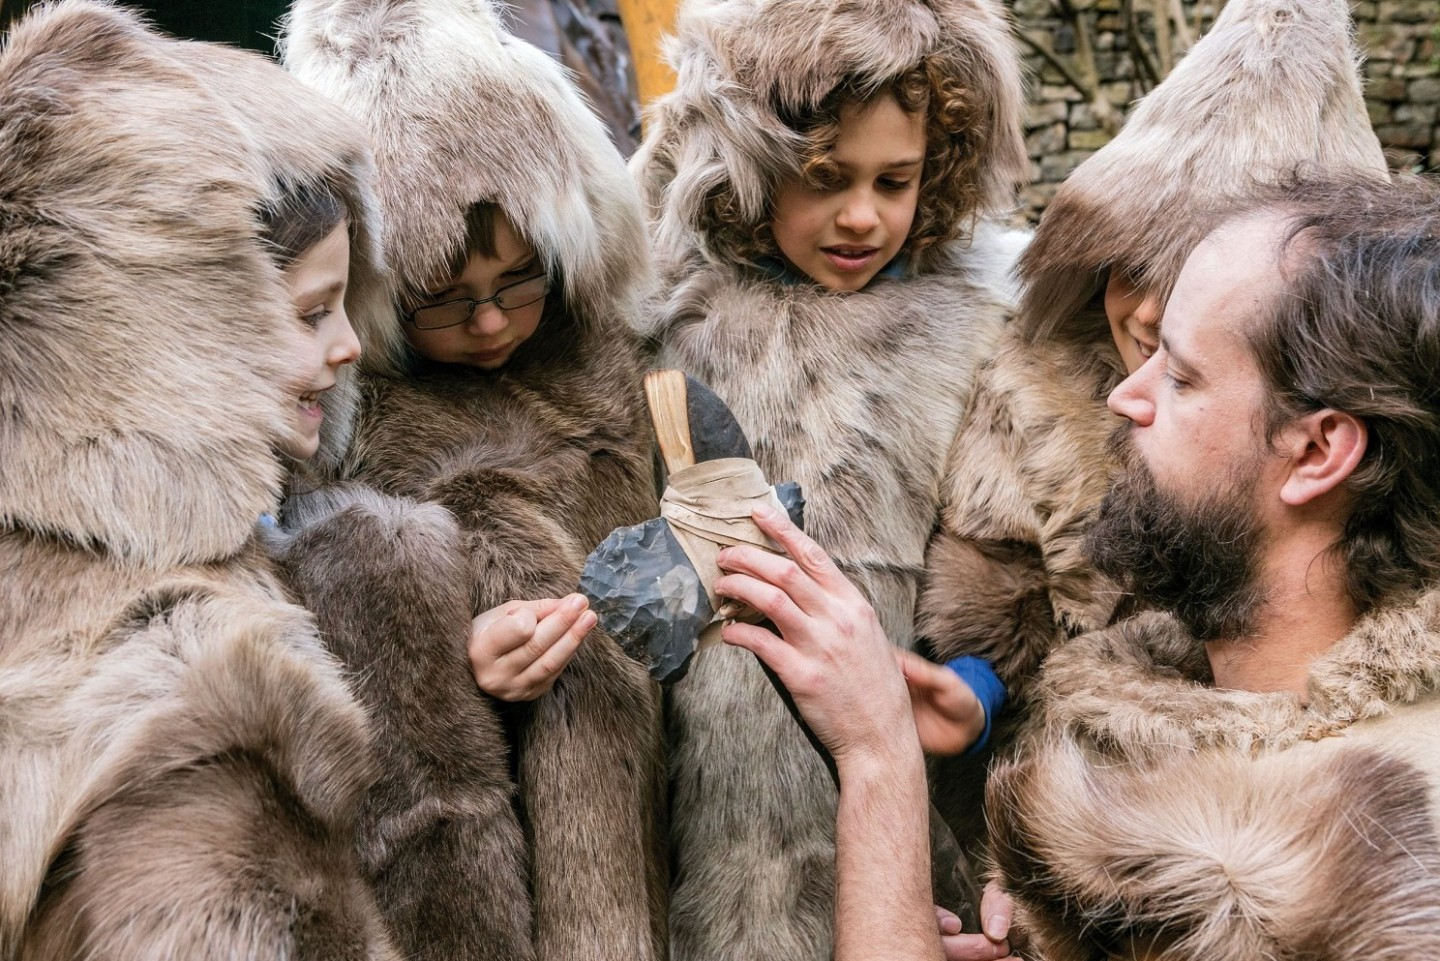 Children dressed as hunters in animal skins at Cheddar Gorge Museum